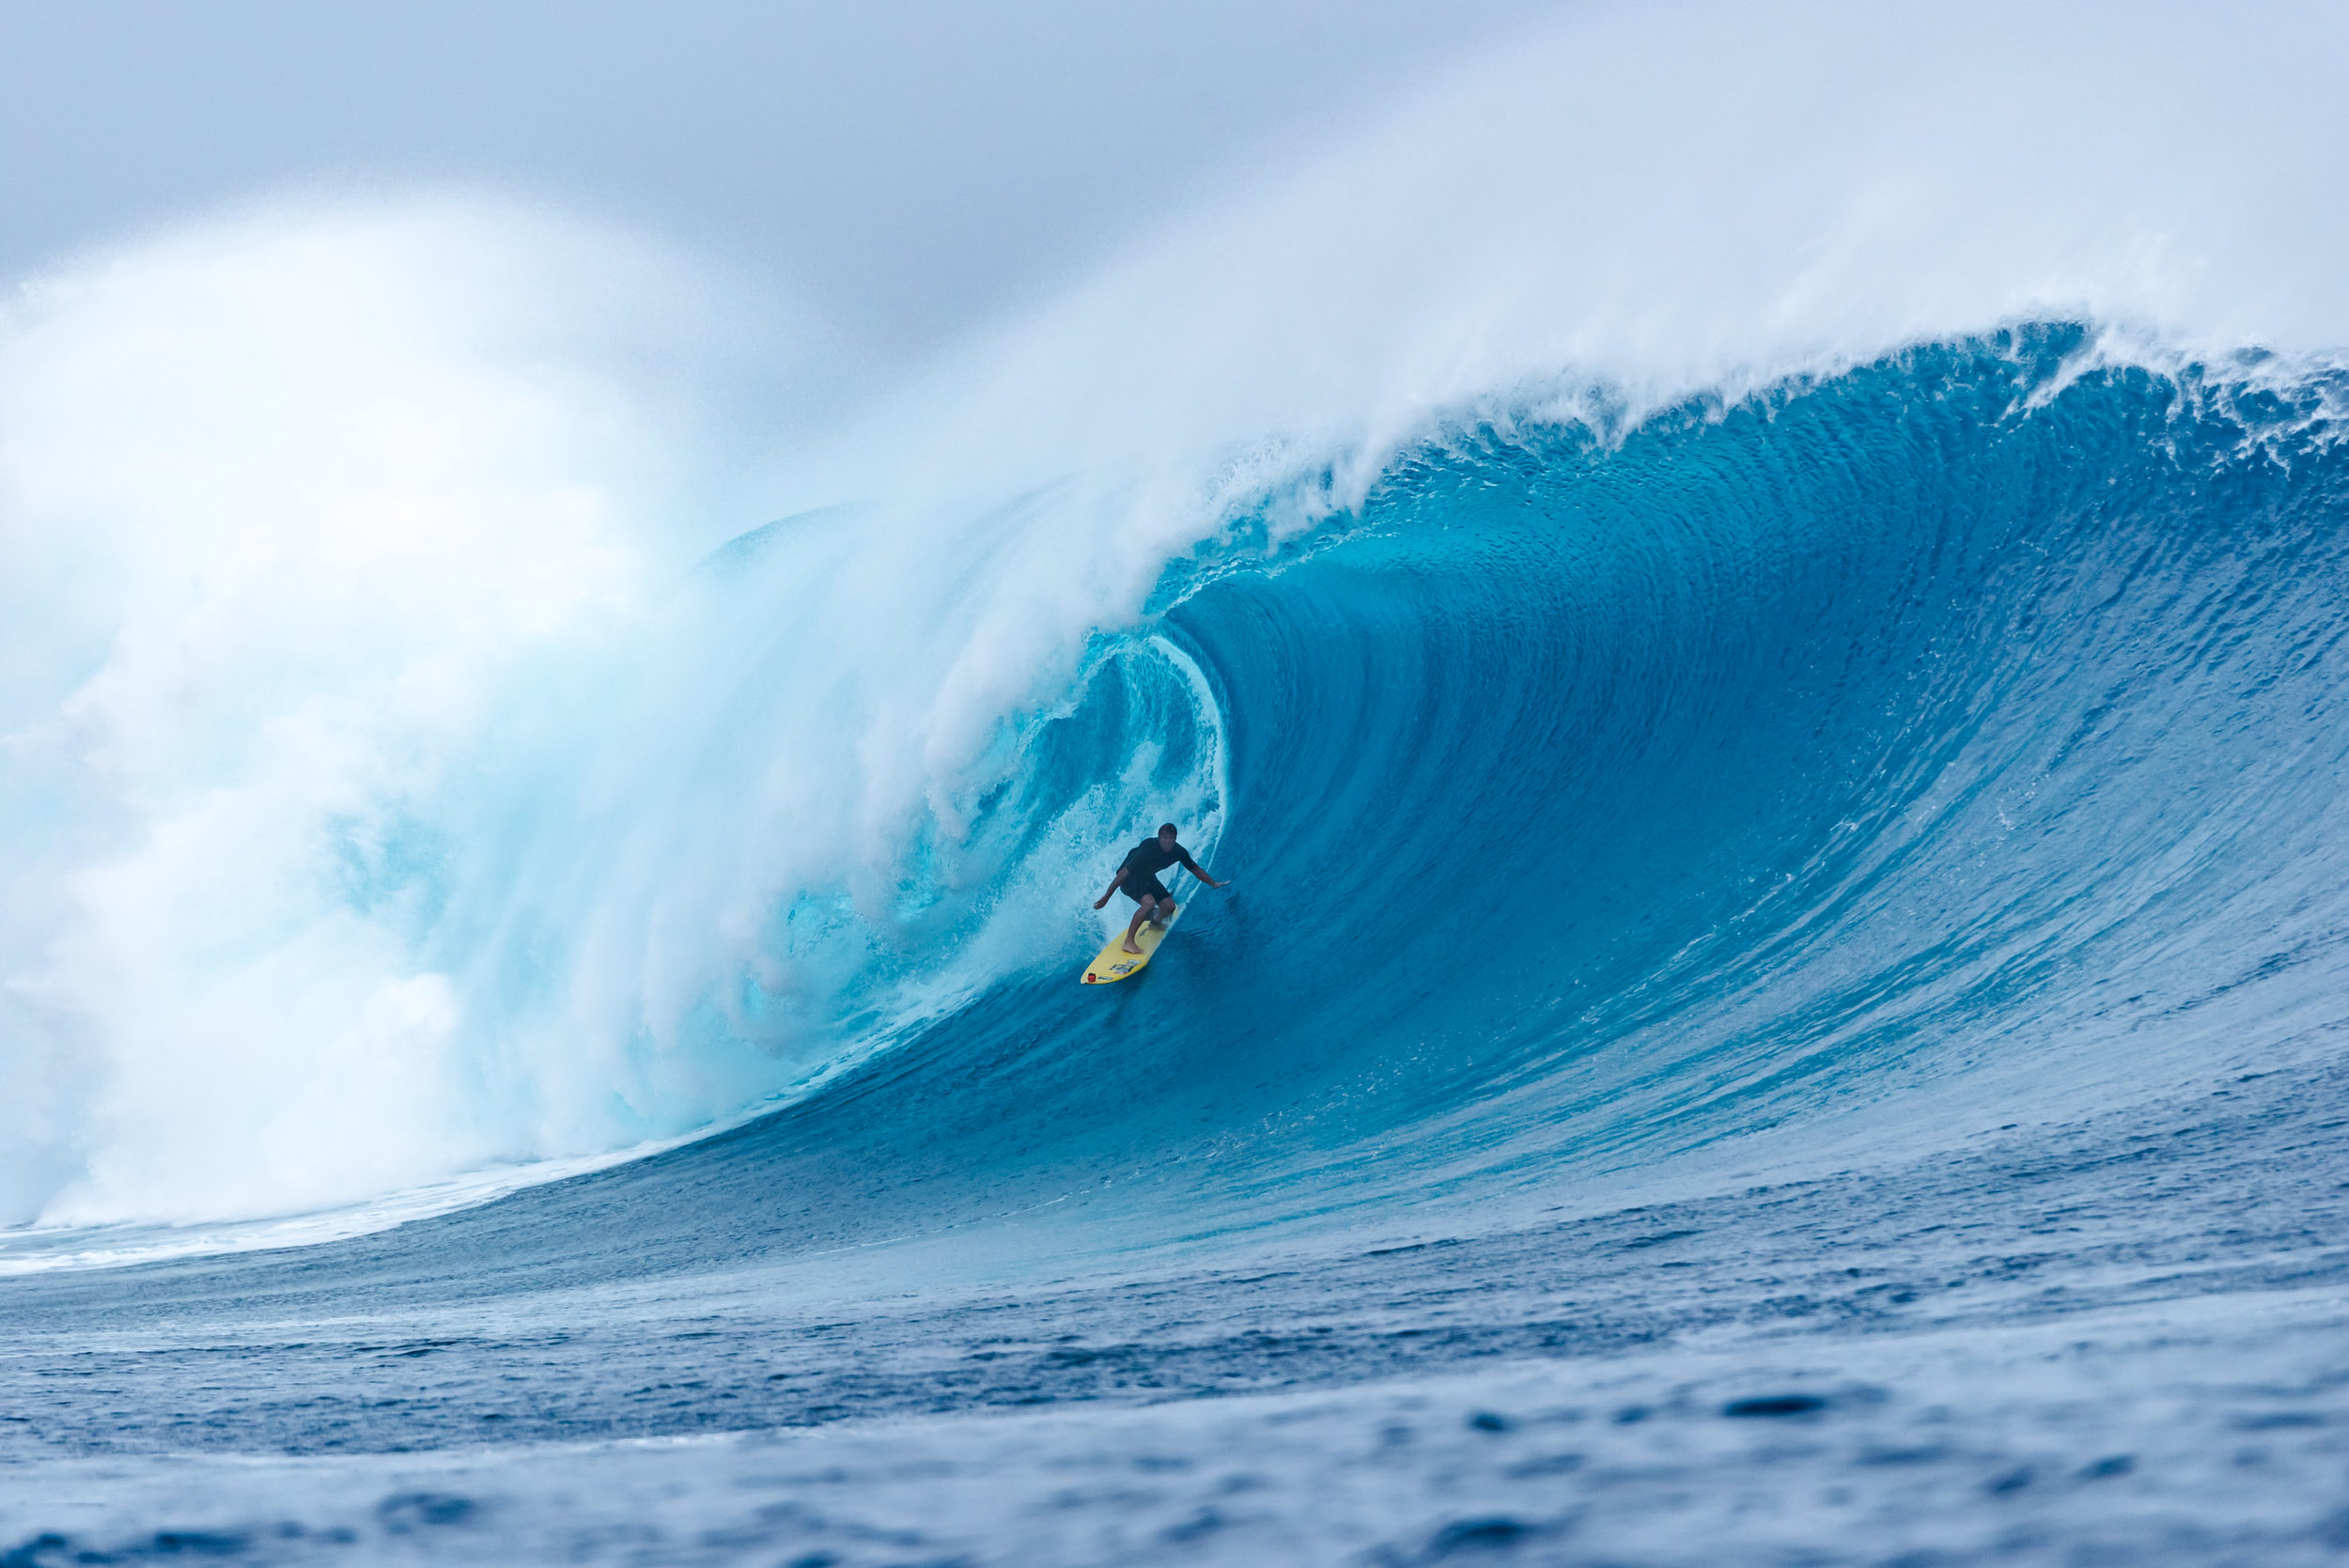 Sequence - How to take amazing surfing photos every time-7.jpg